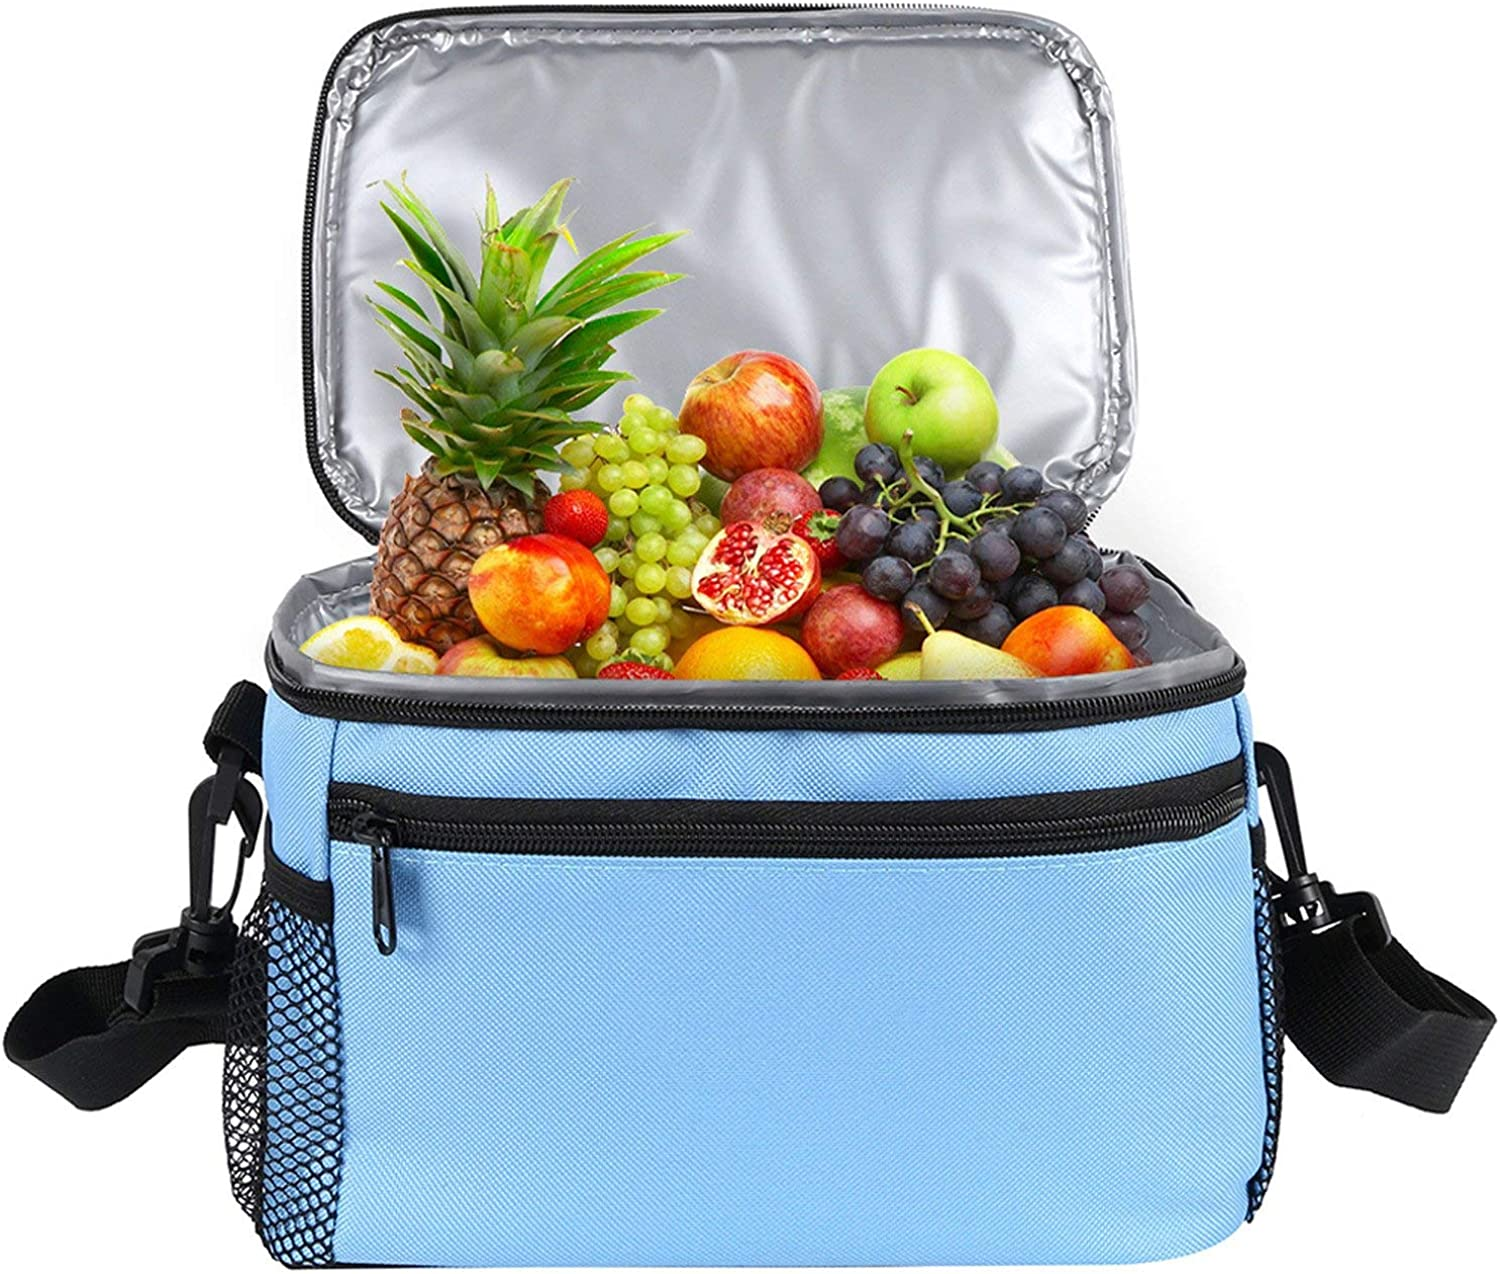 Big Capacity Waterproof Cooler Bag Large Picnic Box Vehicle Insulated Cool Bags Ice Pack Fresh Insulation Handbags 12L,bluee